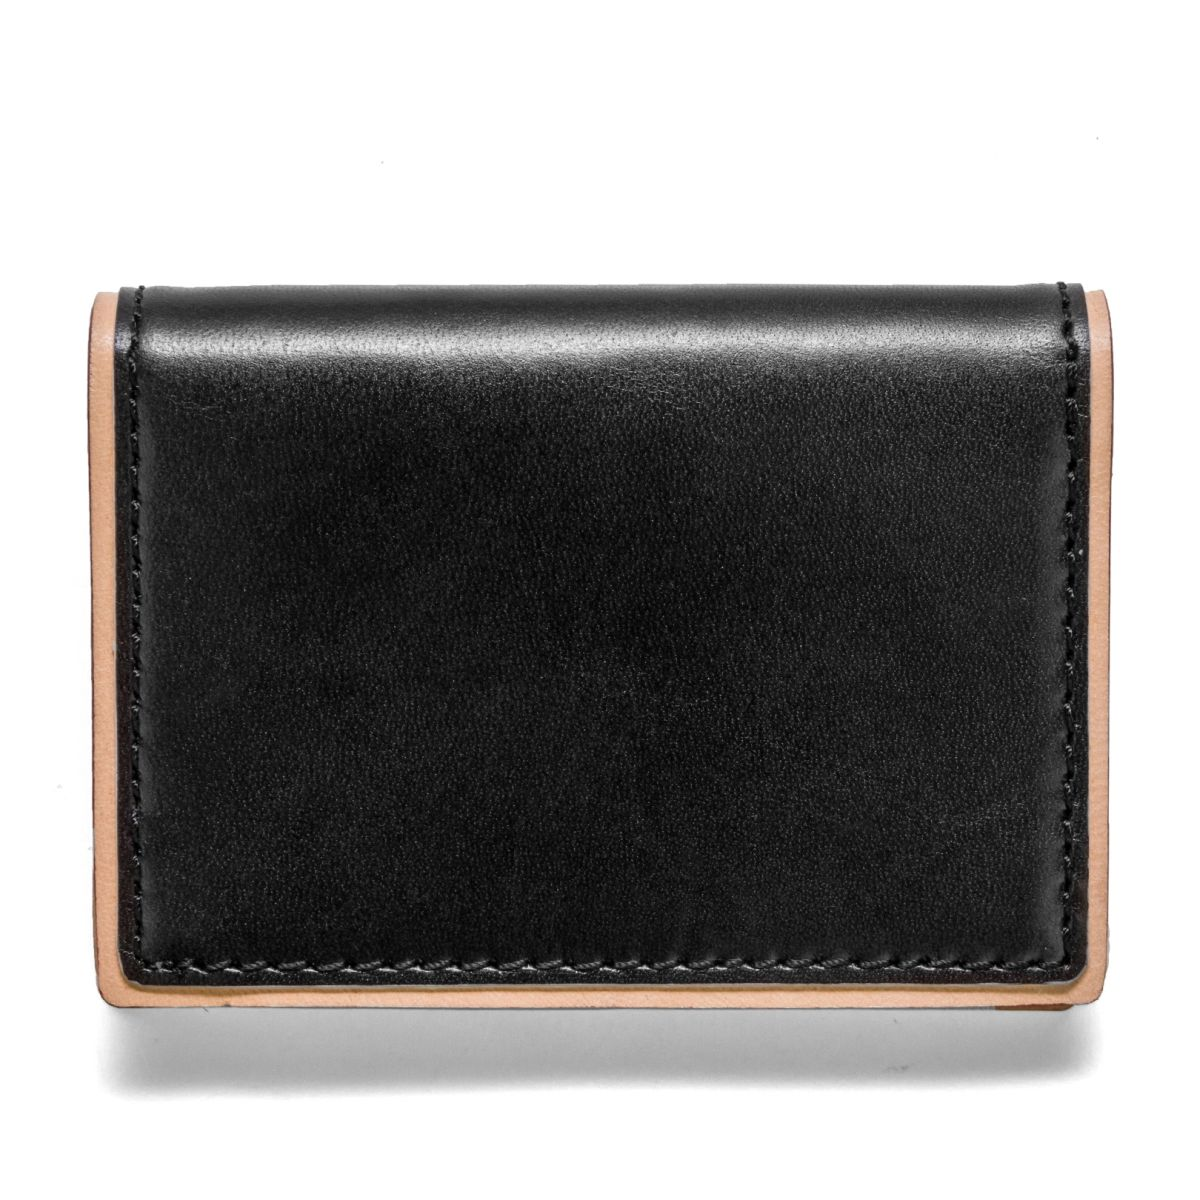 J.FOLD DUOTONE Folding Carrier Leather Wallet - Black